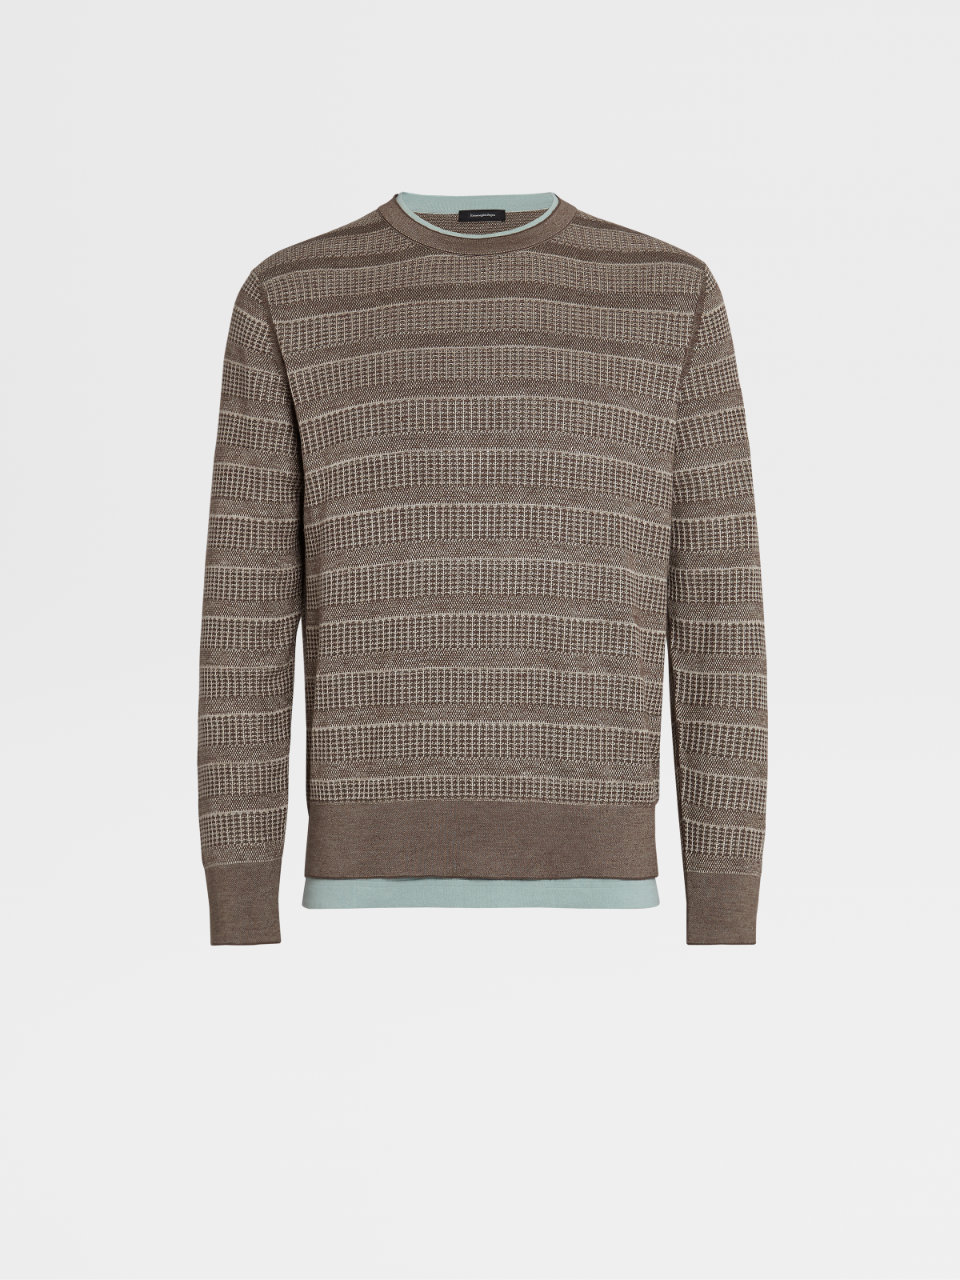 Silk Cotton And Linen Knit Crewneck